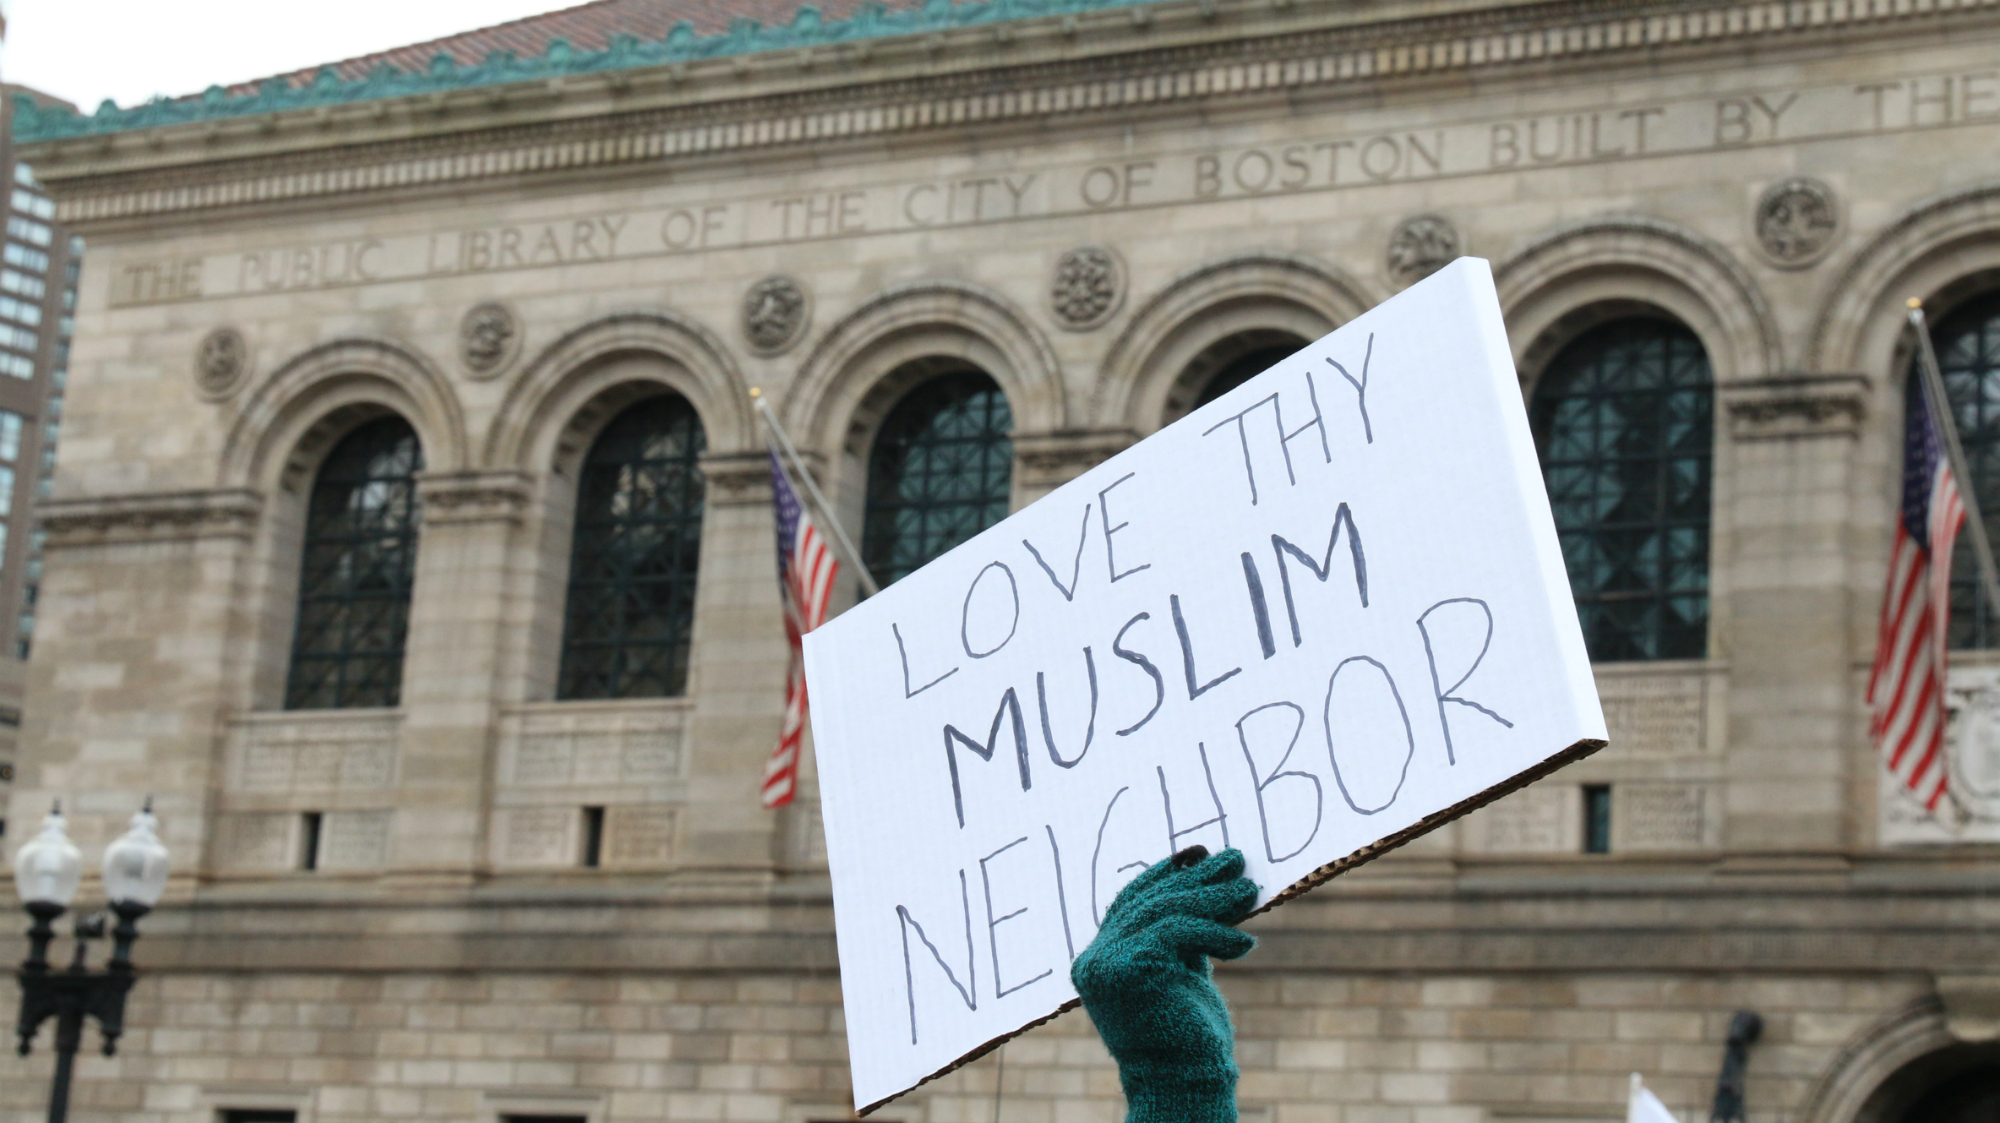 """A sign reads """"Love thy Muslim neighbor"""" at the protest in Boston's Copley Square against President Donald Trump's executive order on immigration. (Photo by Giulia Afiune/GroundTruth)"""